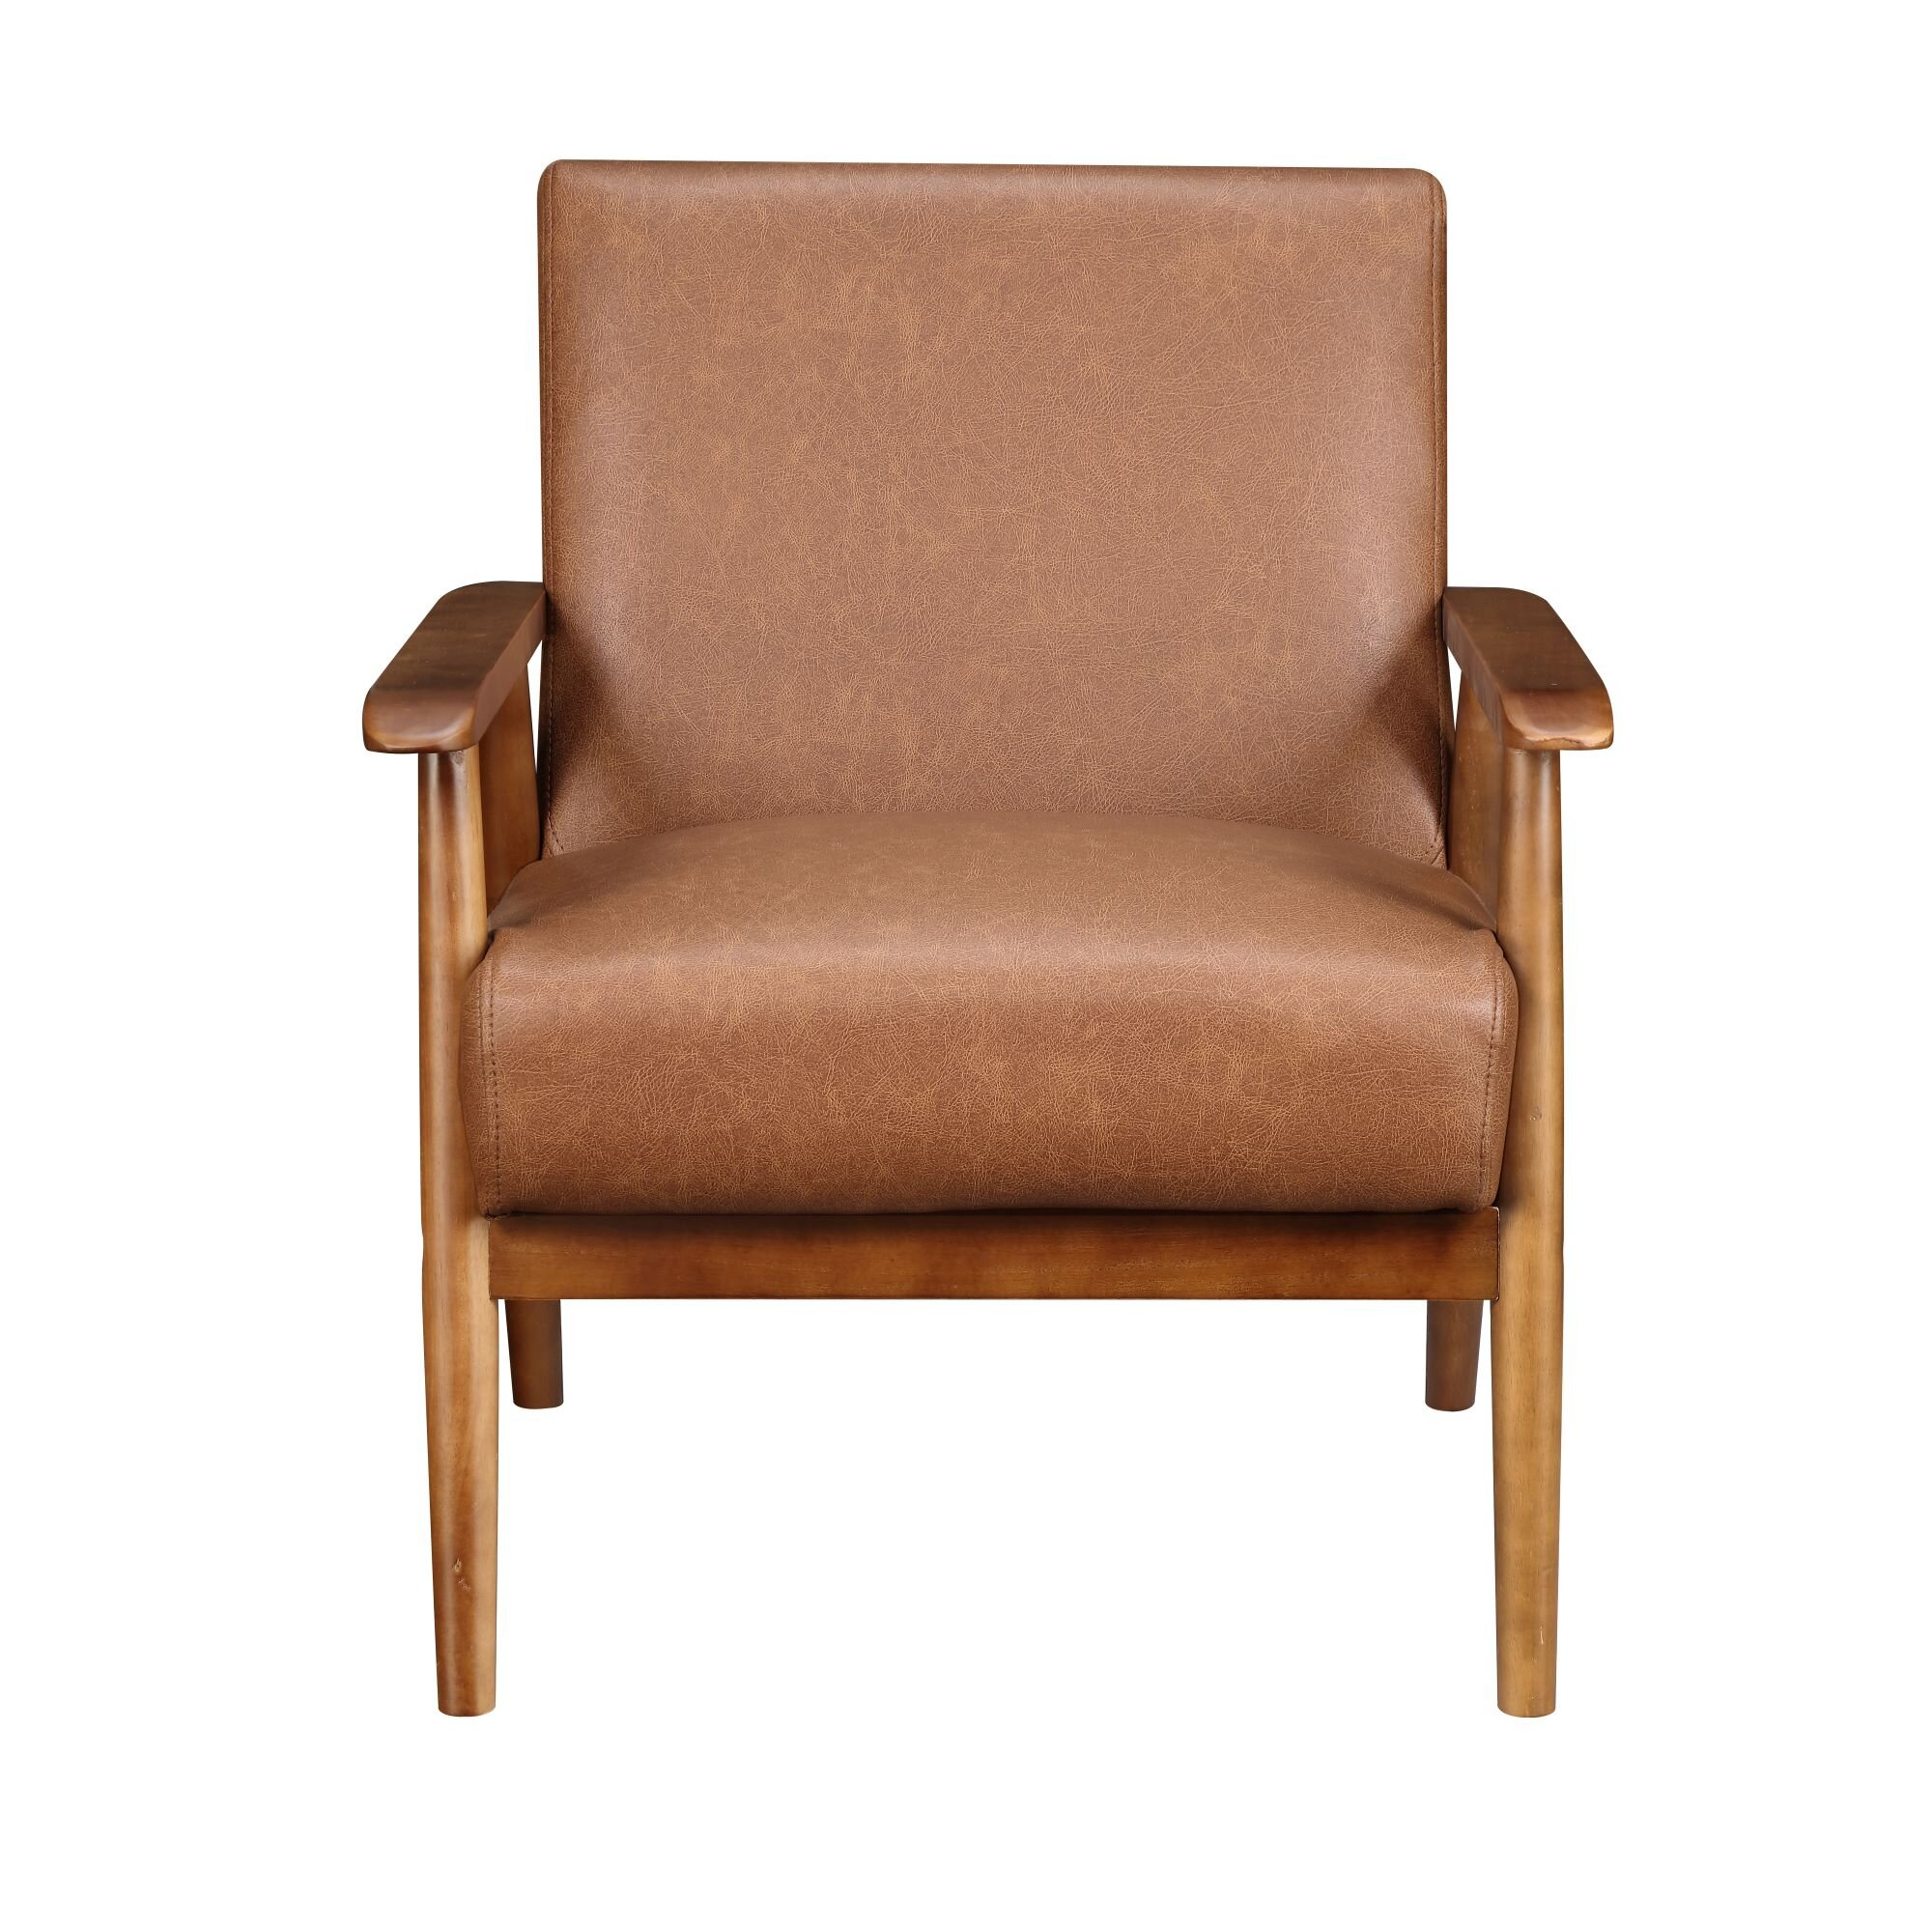 Faux Leather George Oliver Accent Chairs You'Ll Love In 2021 For Marisa Faux Leather Wingback Chairs (View 3 of 15)